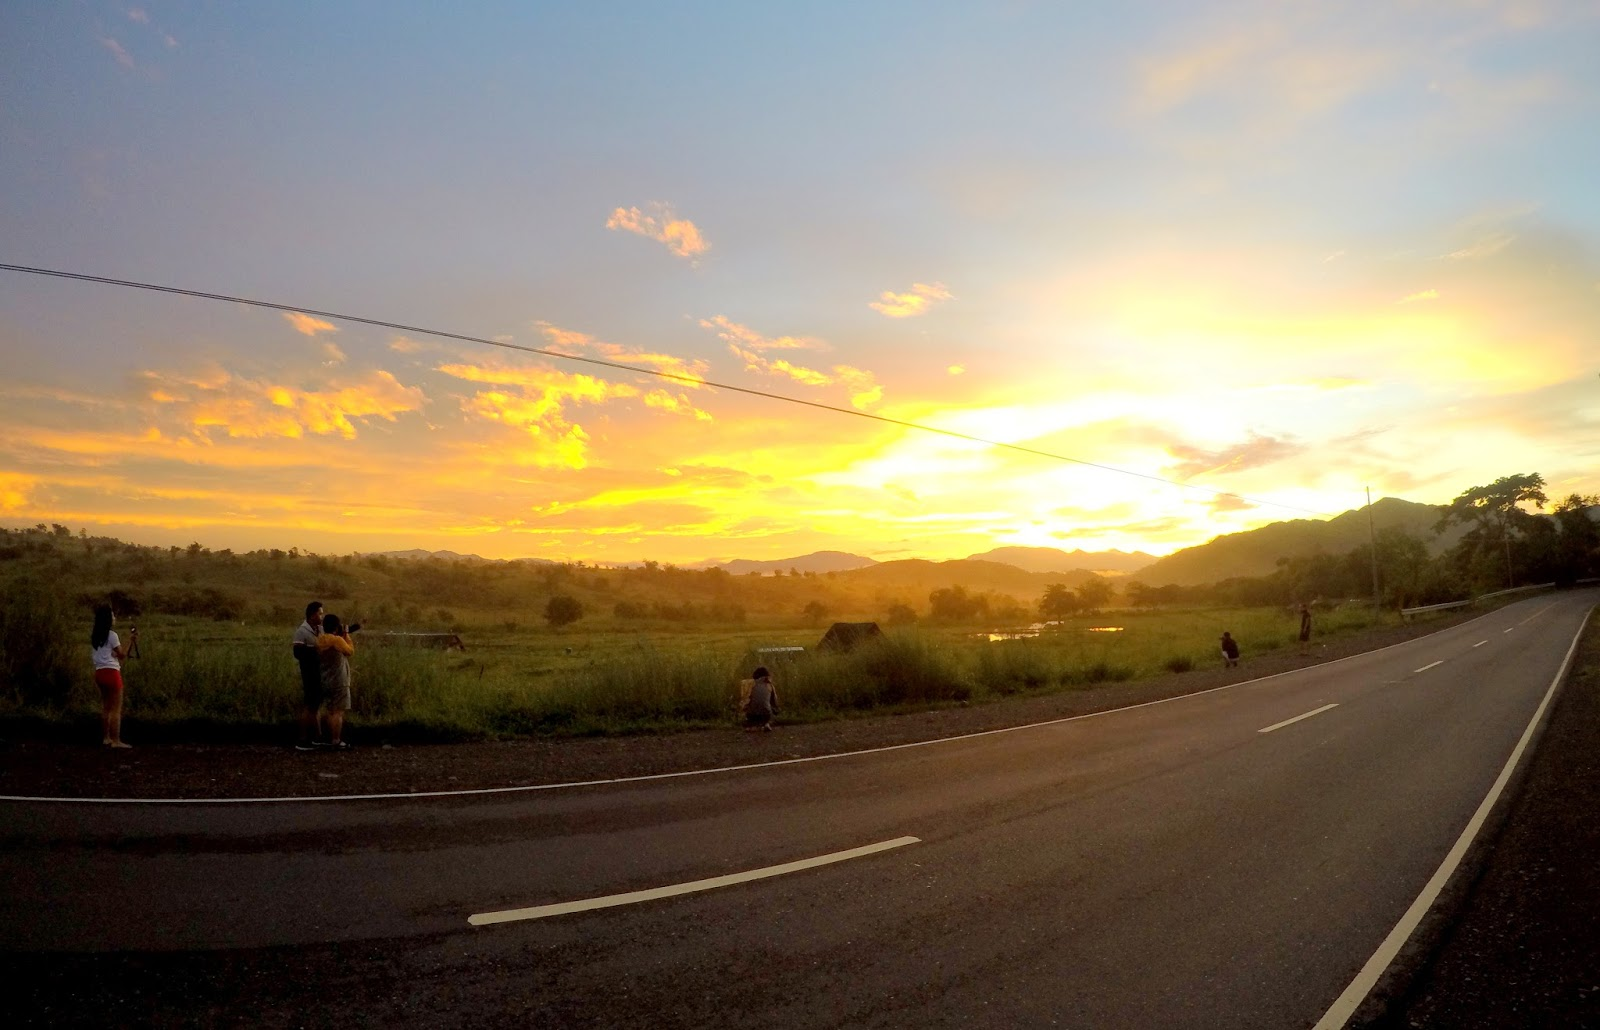 Chasing the Sunset! Pan-Philippine Highway